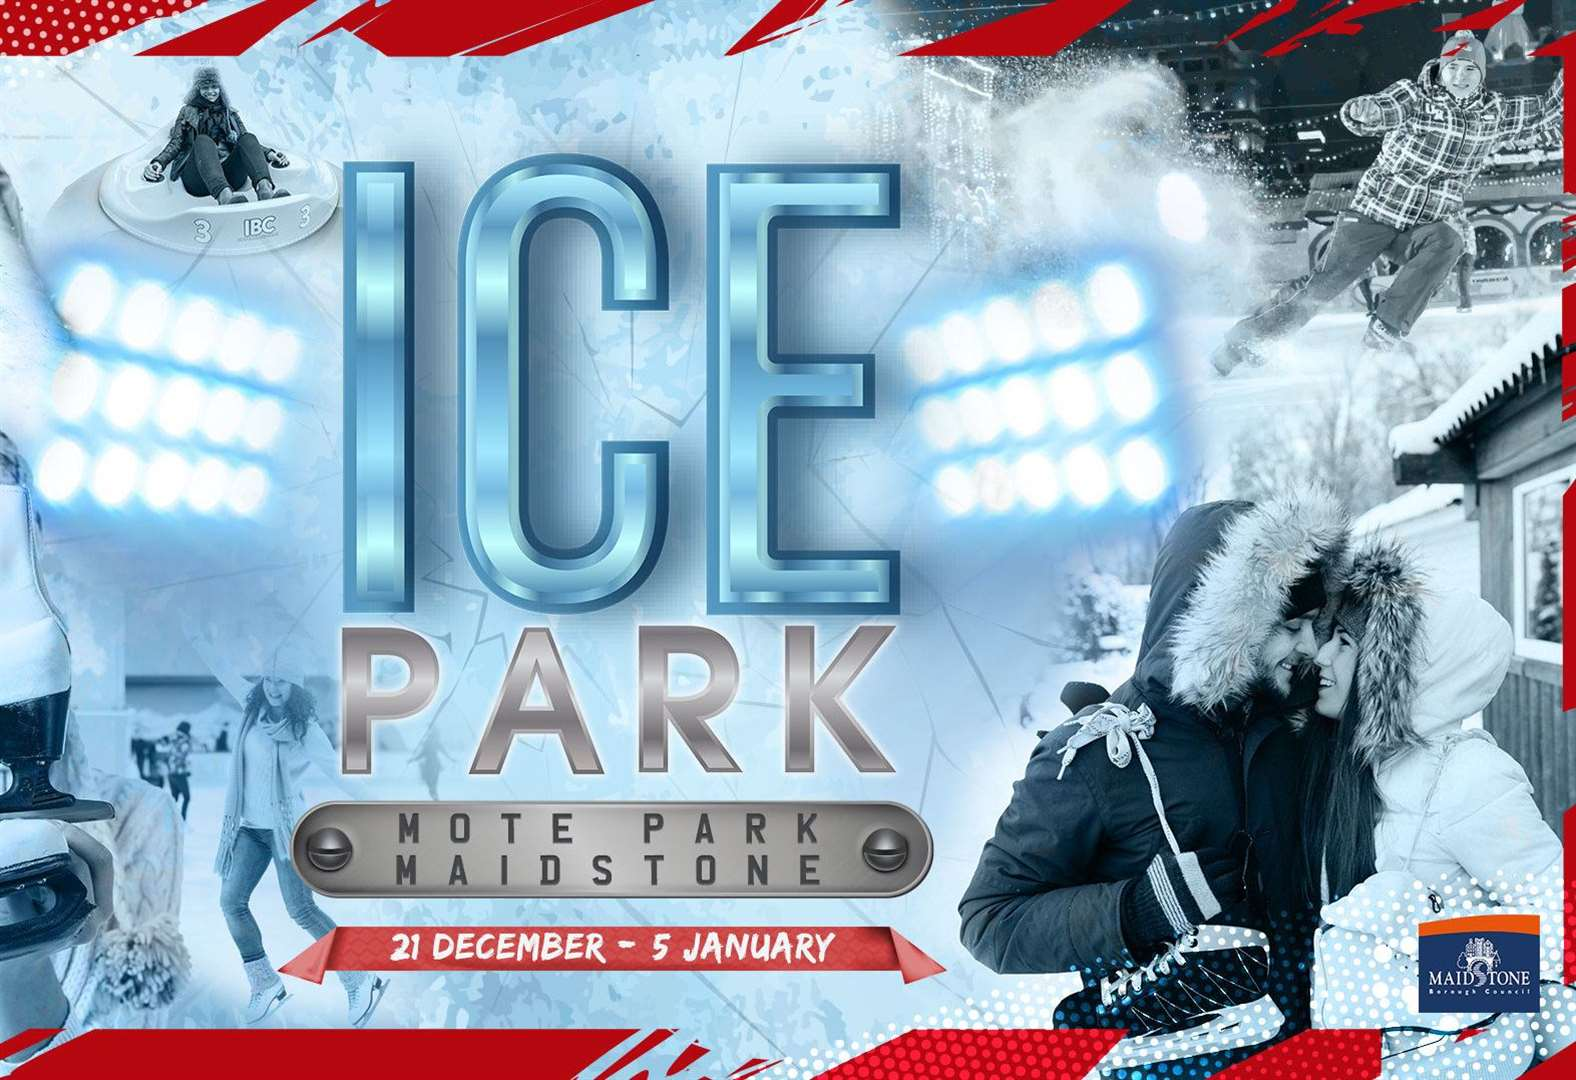 Organiser of cancelled Ice Park 'cannot be named'